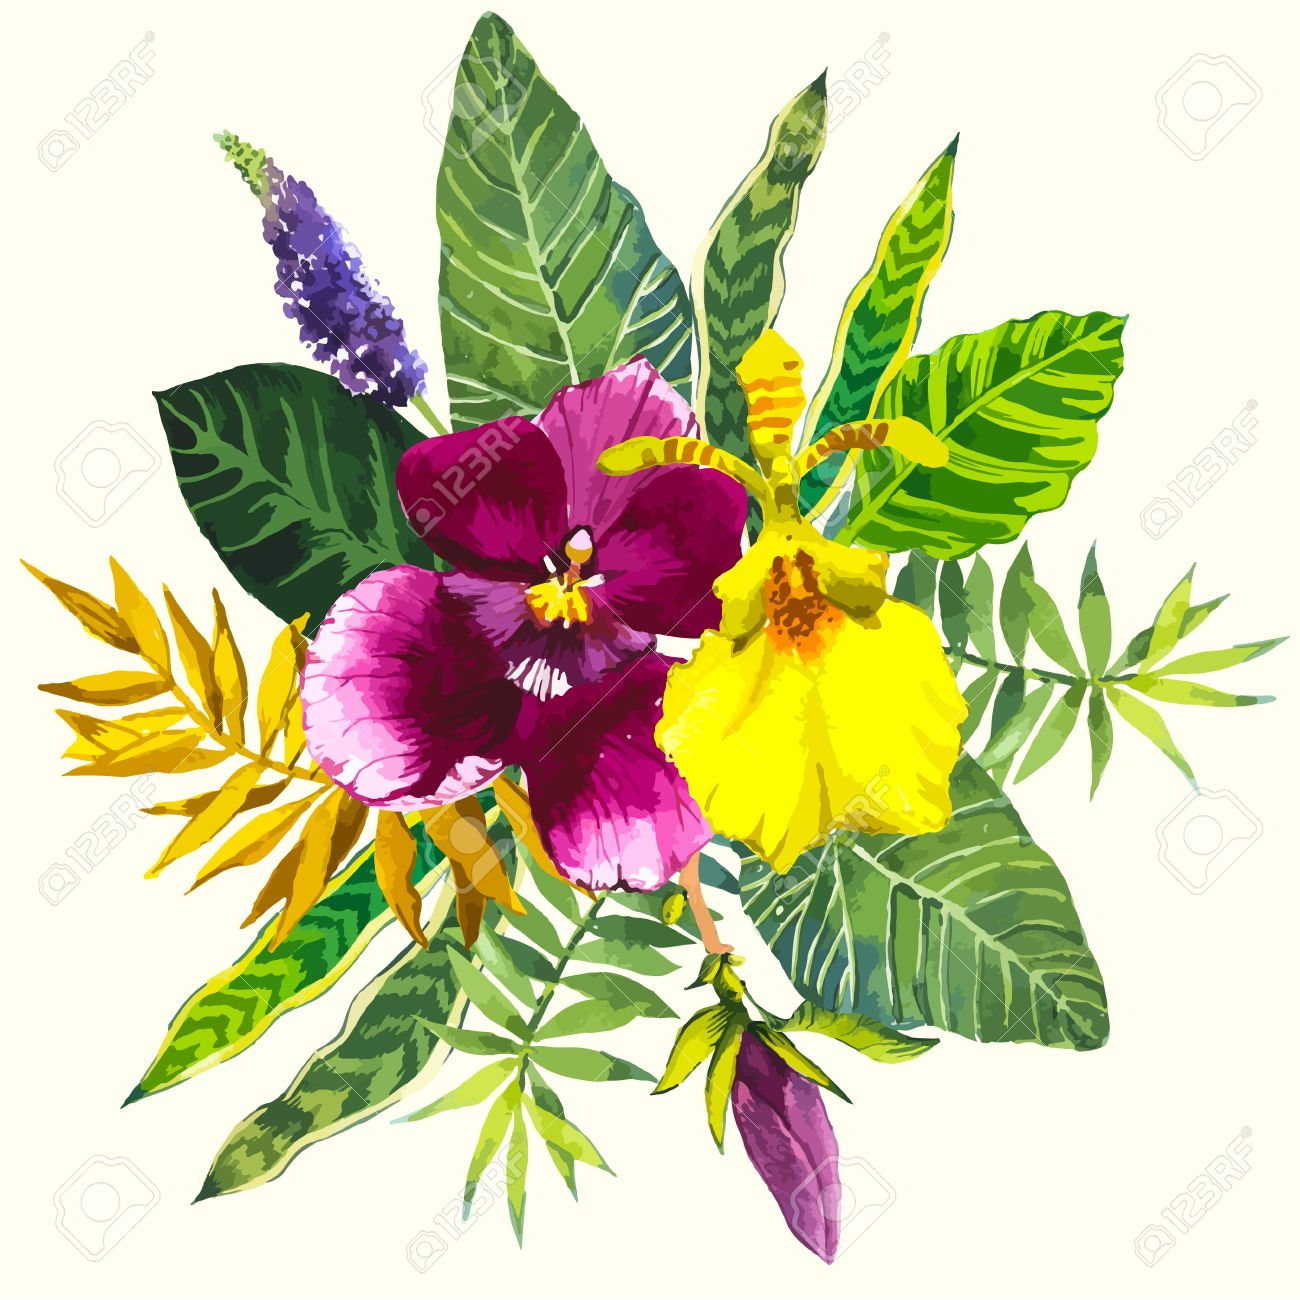 Beautiful bouquet tropical flowers and plants on white background beautiful bouquet tropical flowers and plants on white background composition with yellow and violet orchid izmirmasajfo Gallery